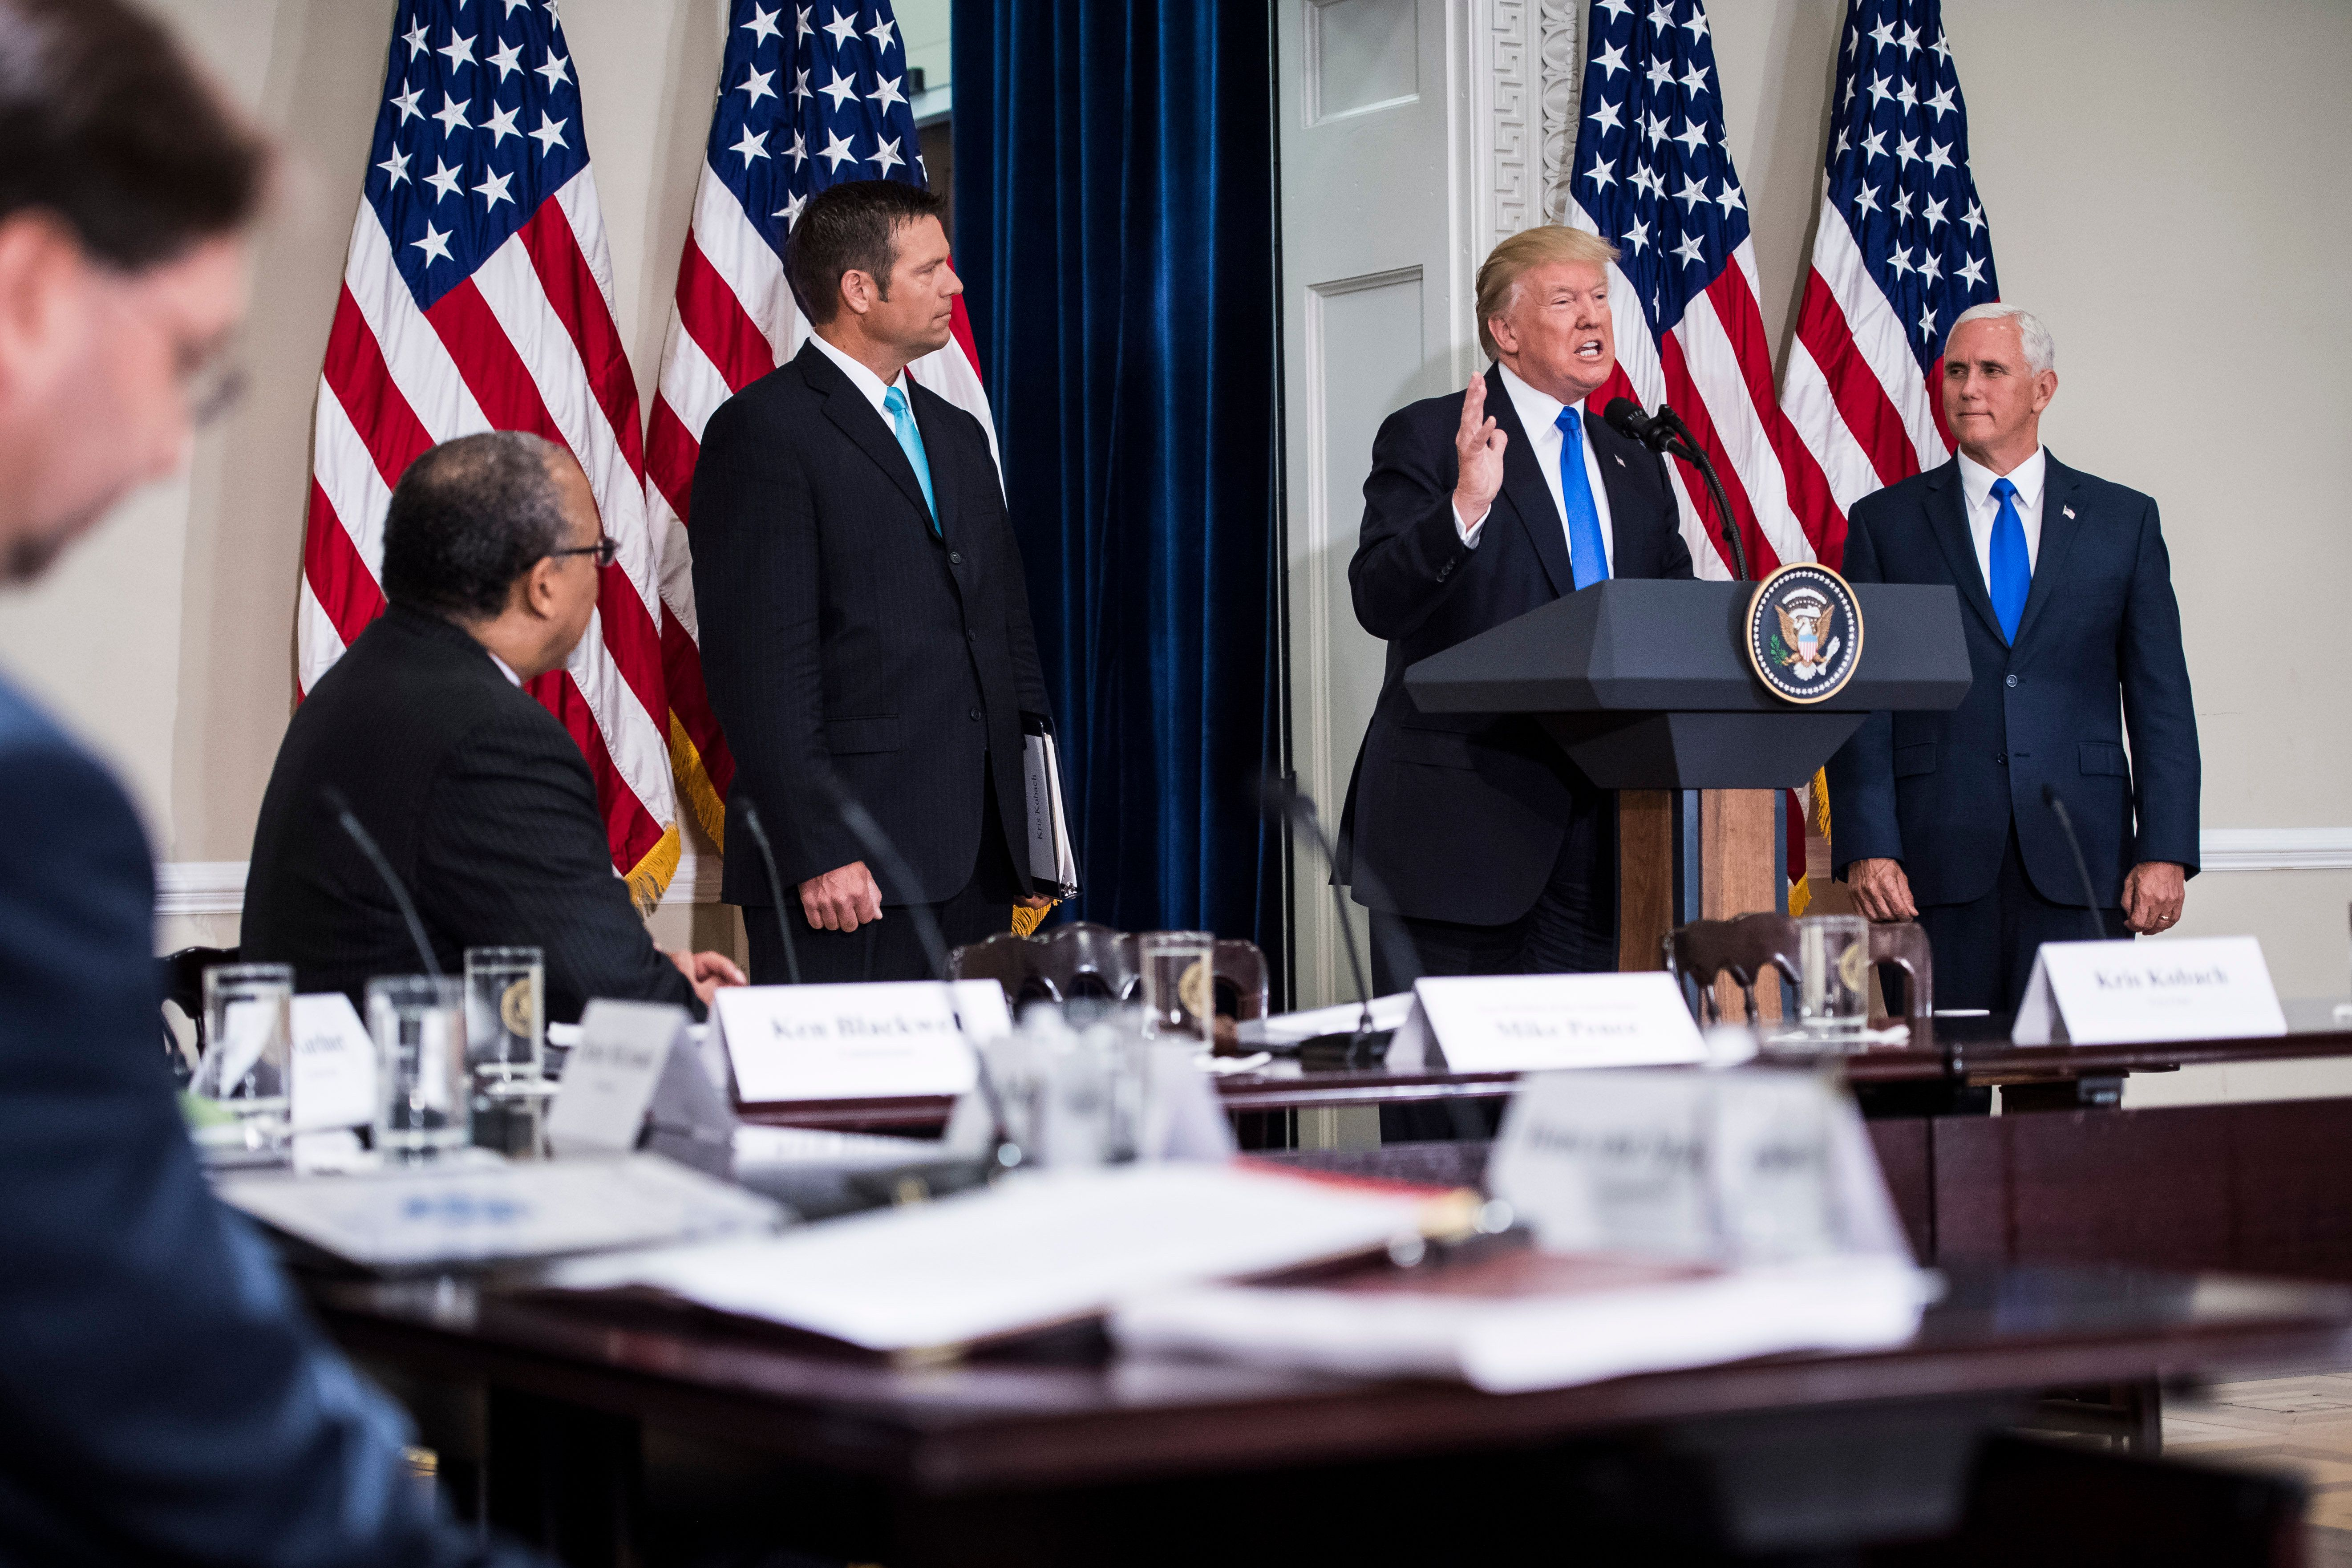 WASHINGTON, DC - JULY 19: President Donald Trump, accompanied by Vice President Mike Pence, right, and Kansas Secretary of State Kris Kobach, center left, speaks at the first meeting of the Presidential Advisory Commission on Election Integrity at the Eisenhower Executive Office Building on the White House complex in Washington, DC on Wednesday, July 19, 2017. (Photo by Jabin Botsford/The Washington Post via Getty Images)